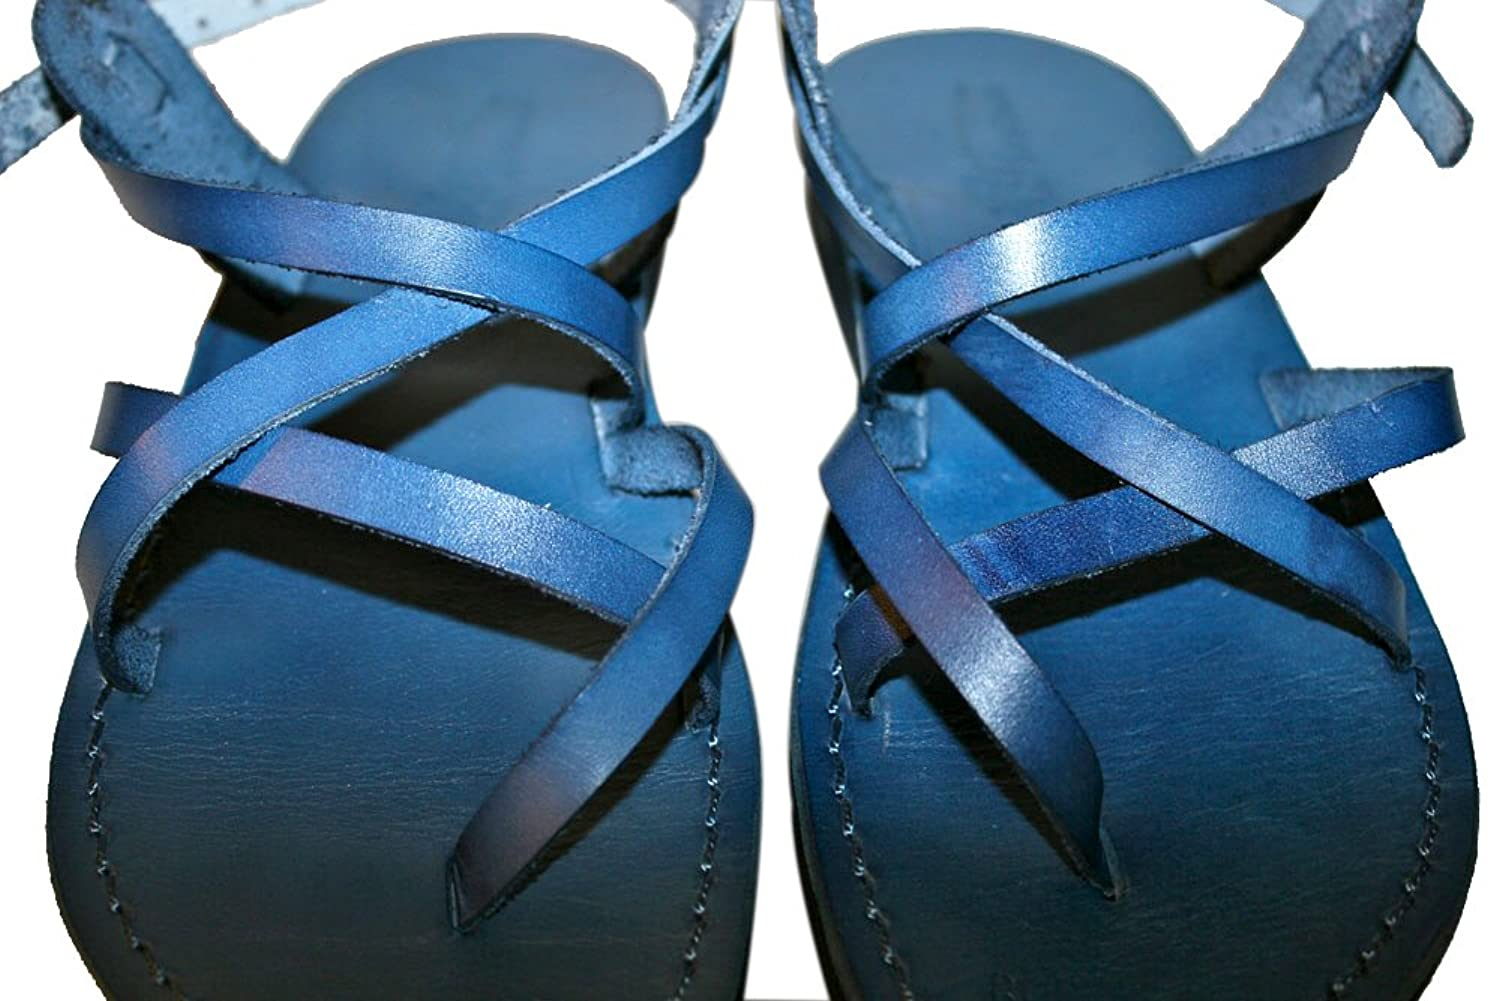 Blue Triple Unisex Leather Sandals / Genuine Handmade Leather Holy Land Biblical Jesus Sandals